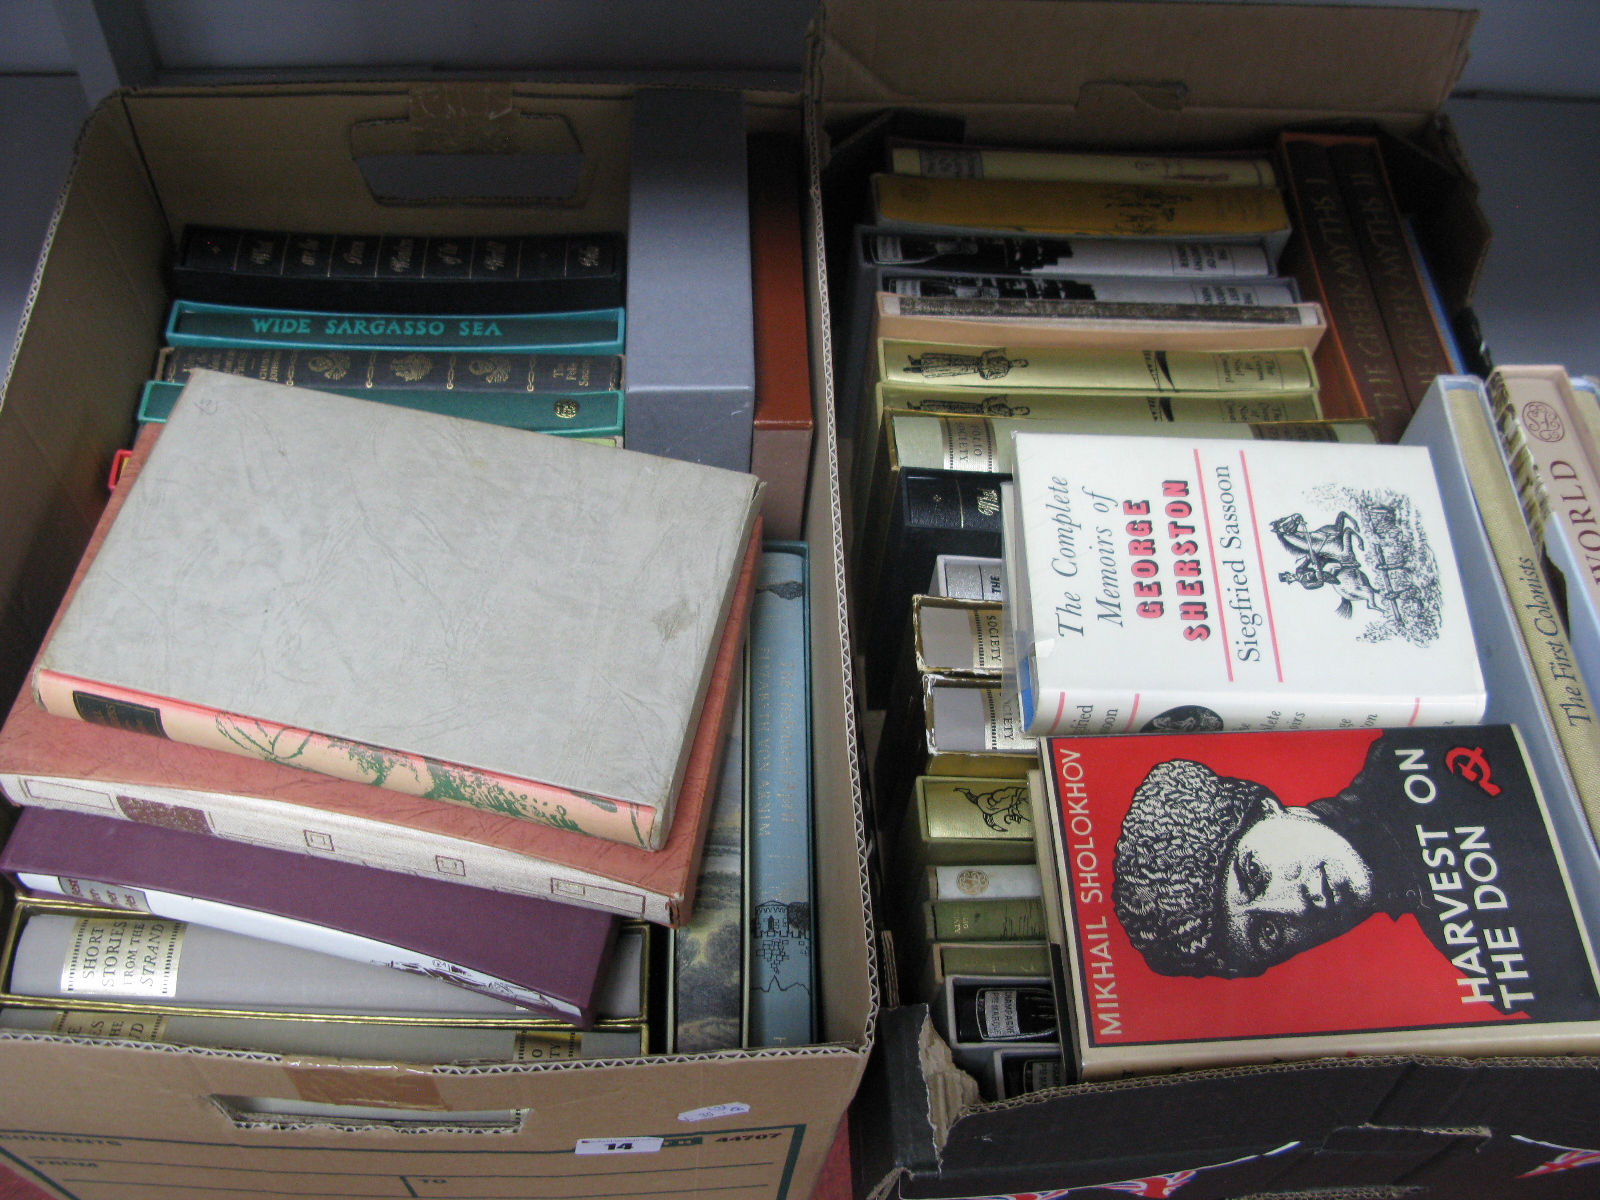 A Quantity of Mainly Folio Society Books, many duplicated, etc:- Two Boxes